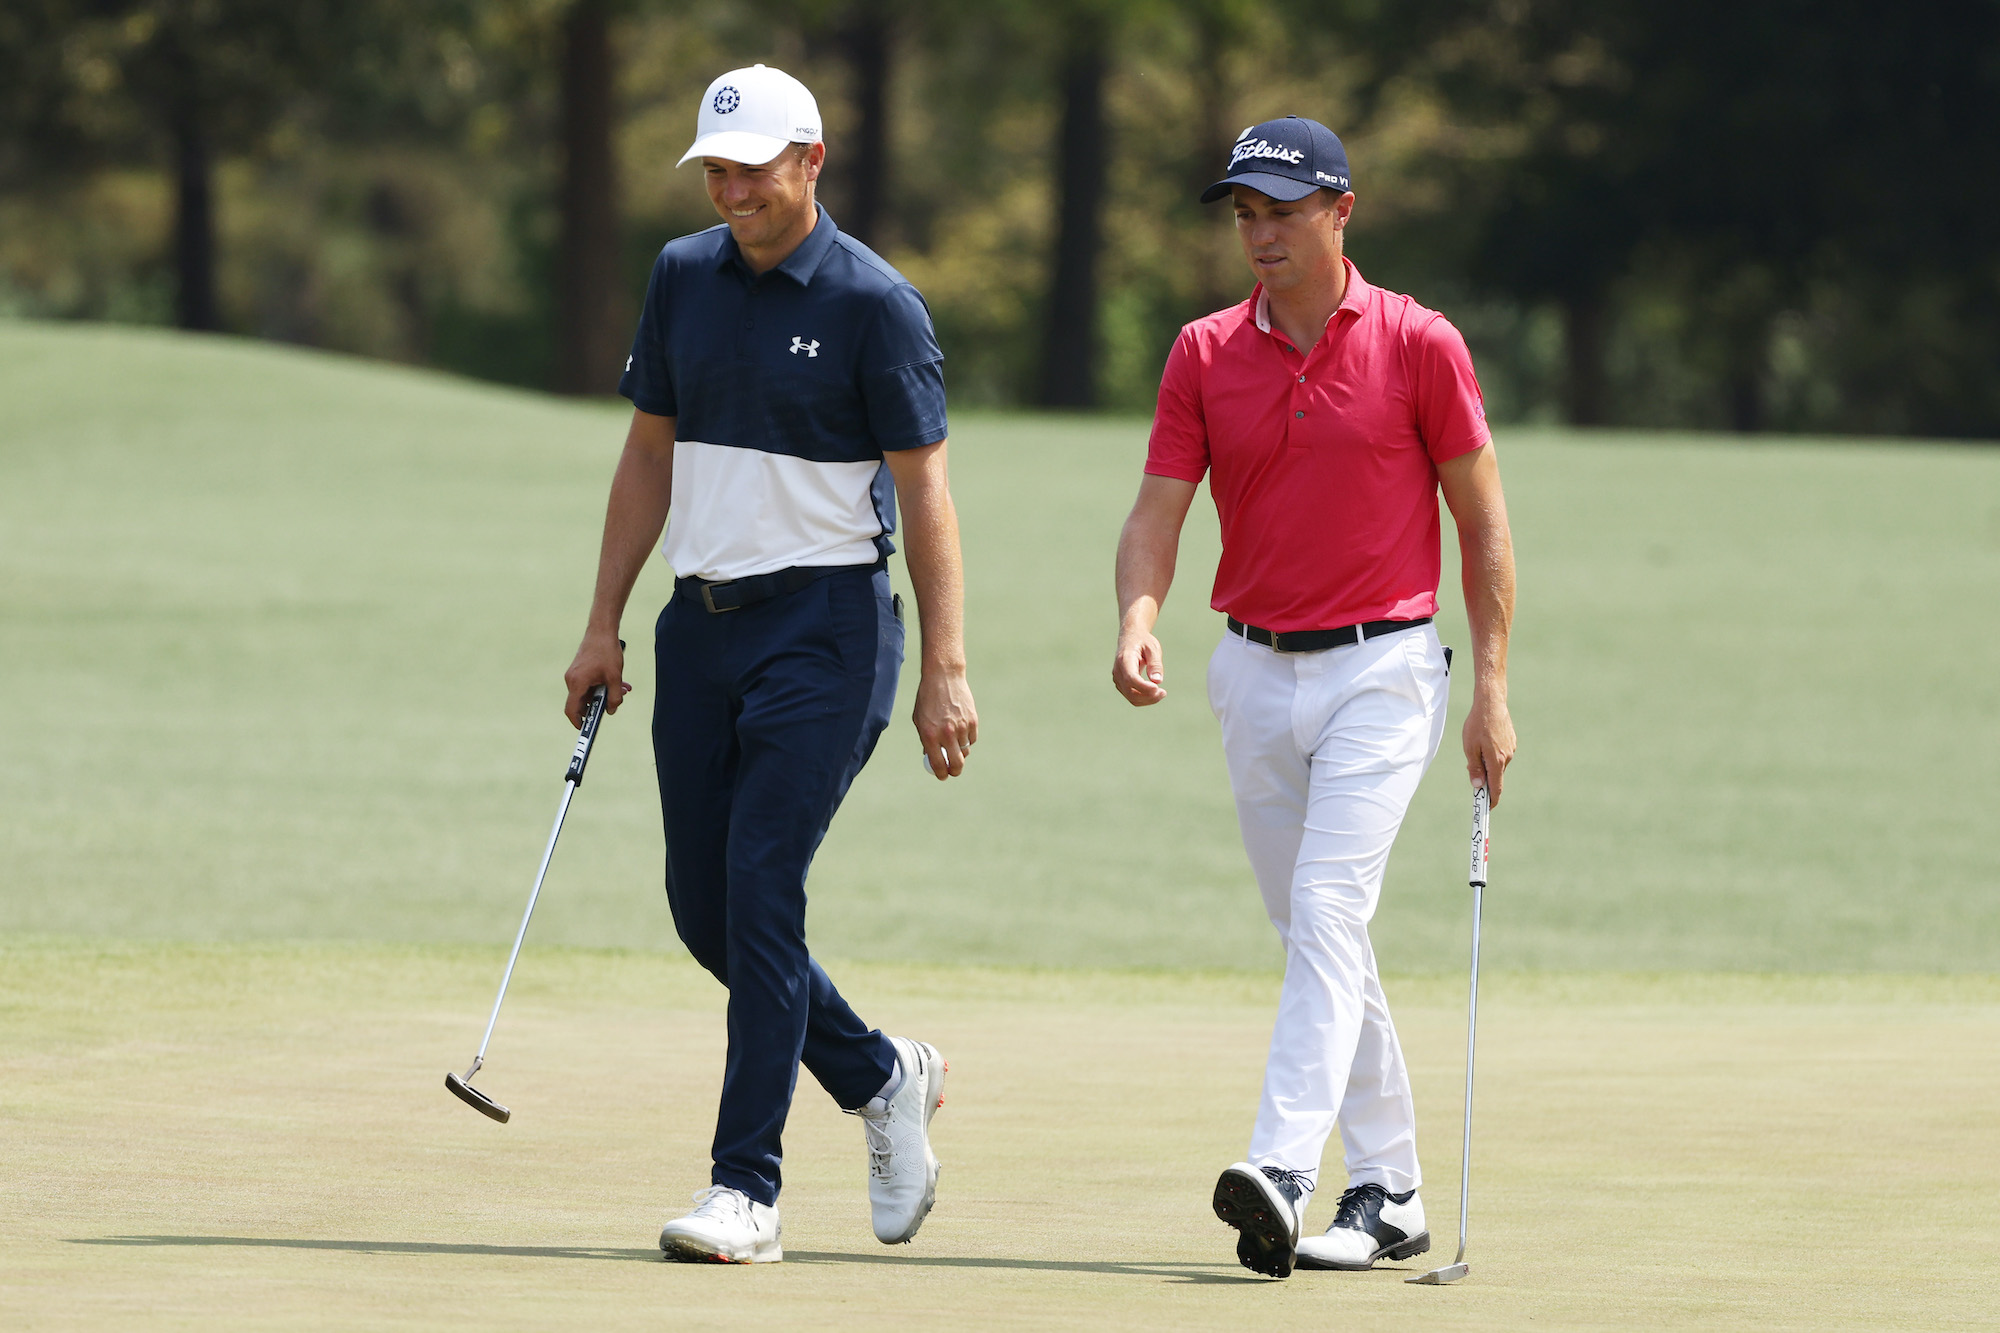 2021 Masters Tournament: Preview Day 3 - Jordan and Justin Thomas During Wednesday's Practice Round